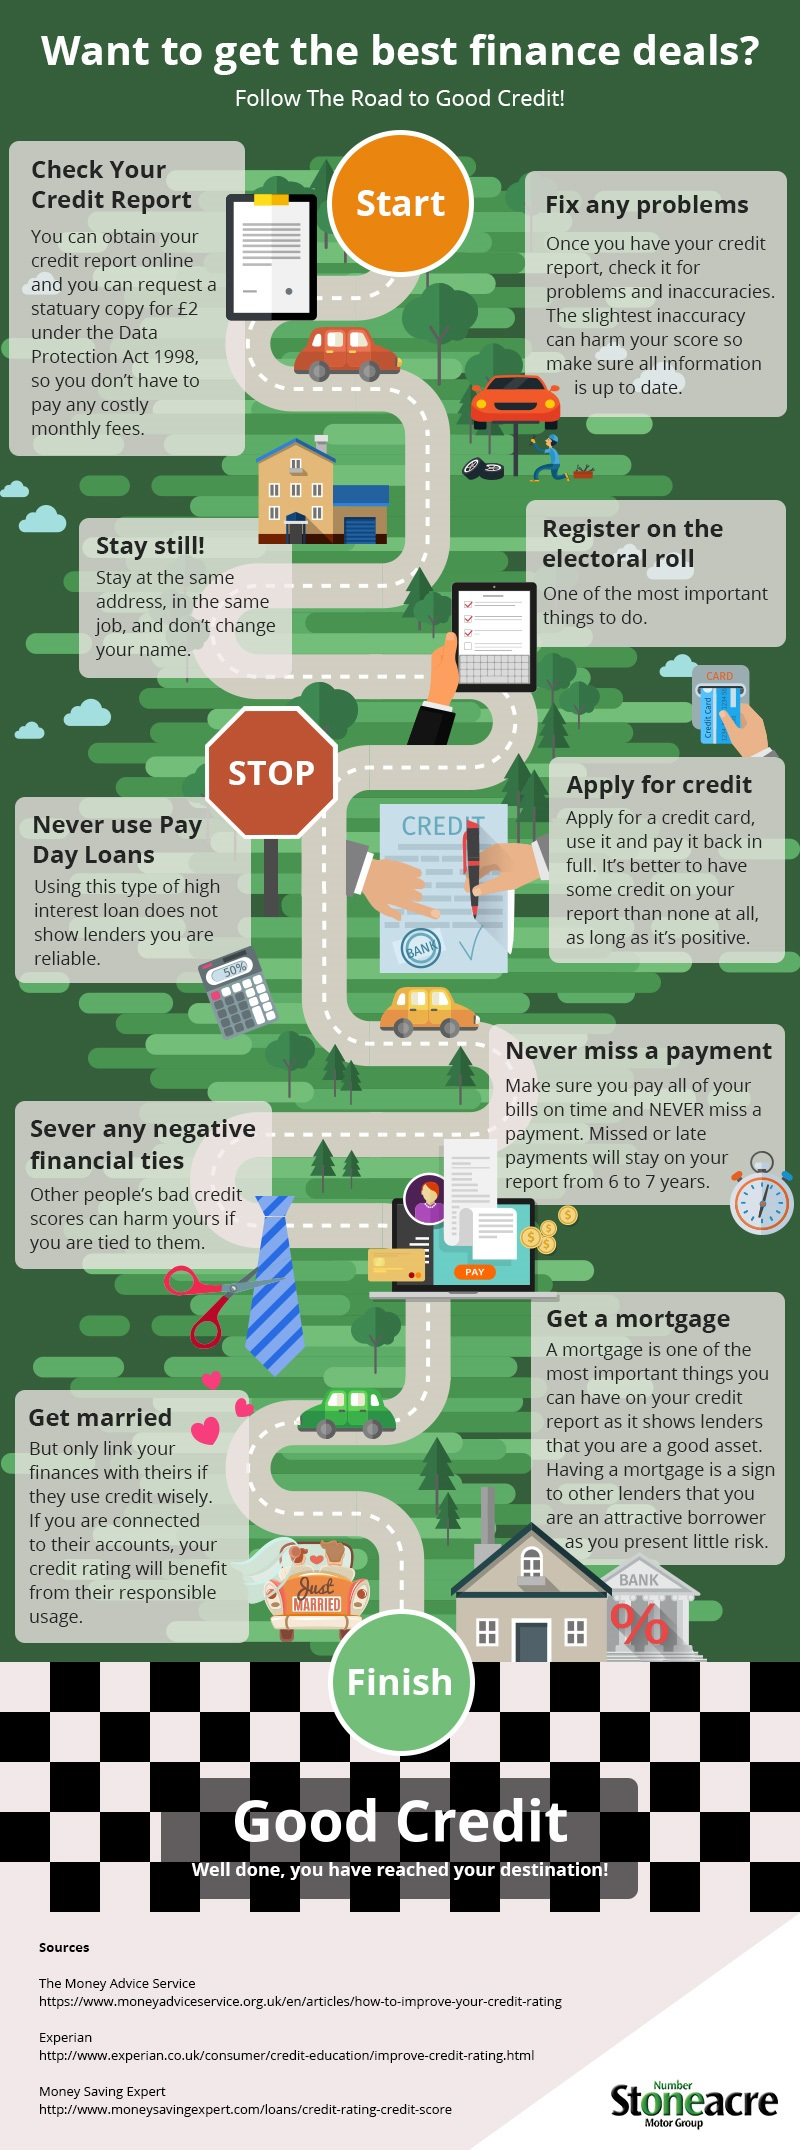 How to Follow the Road To Good Credit